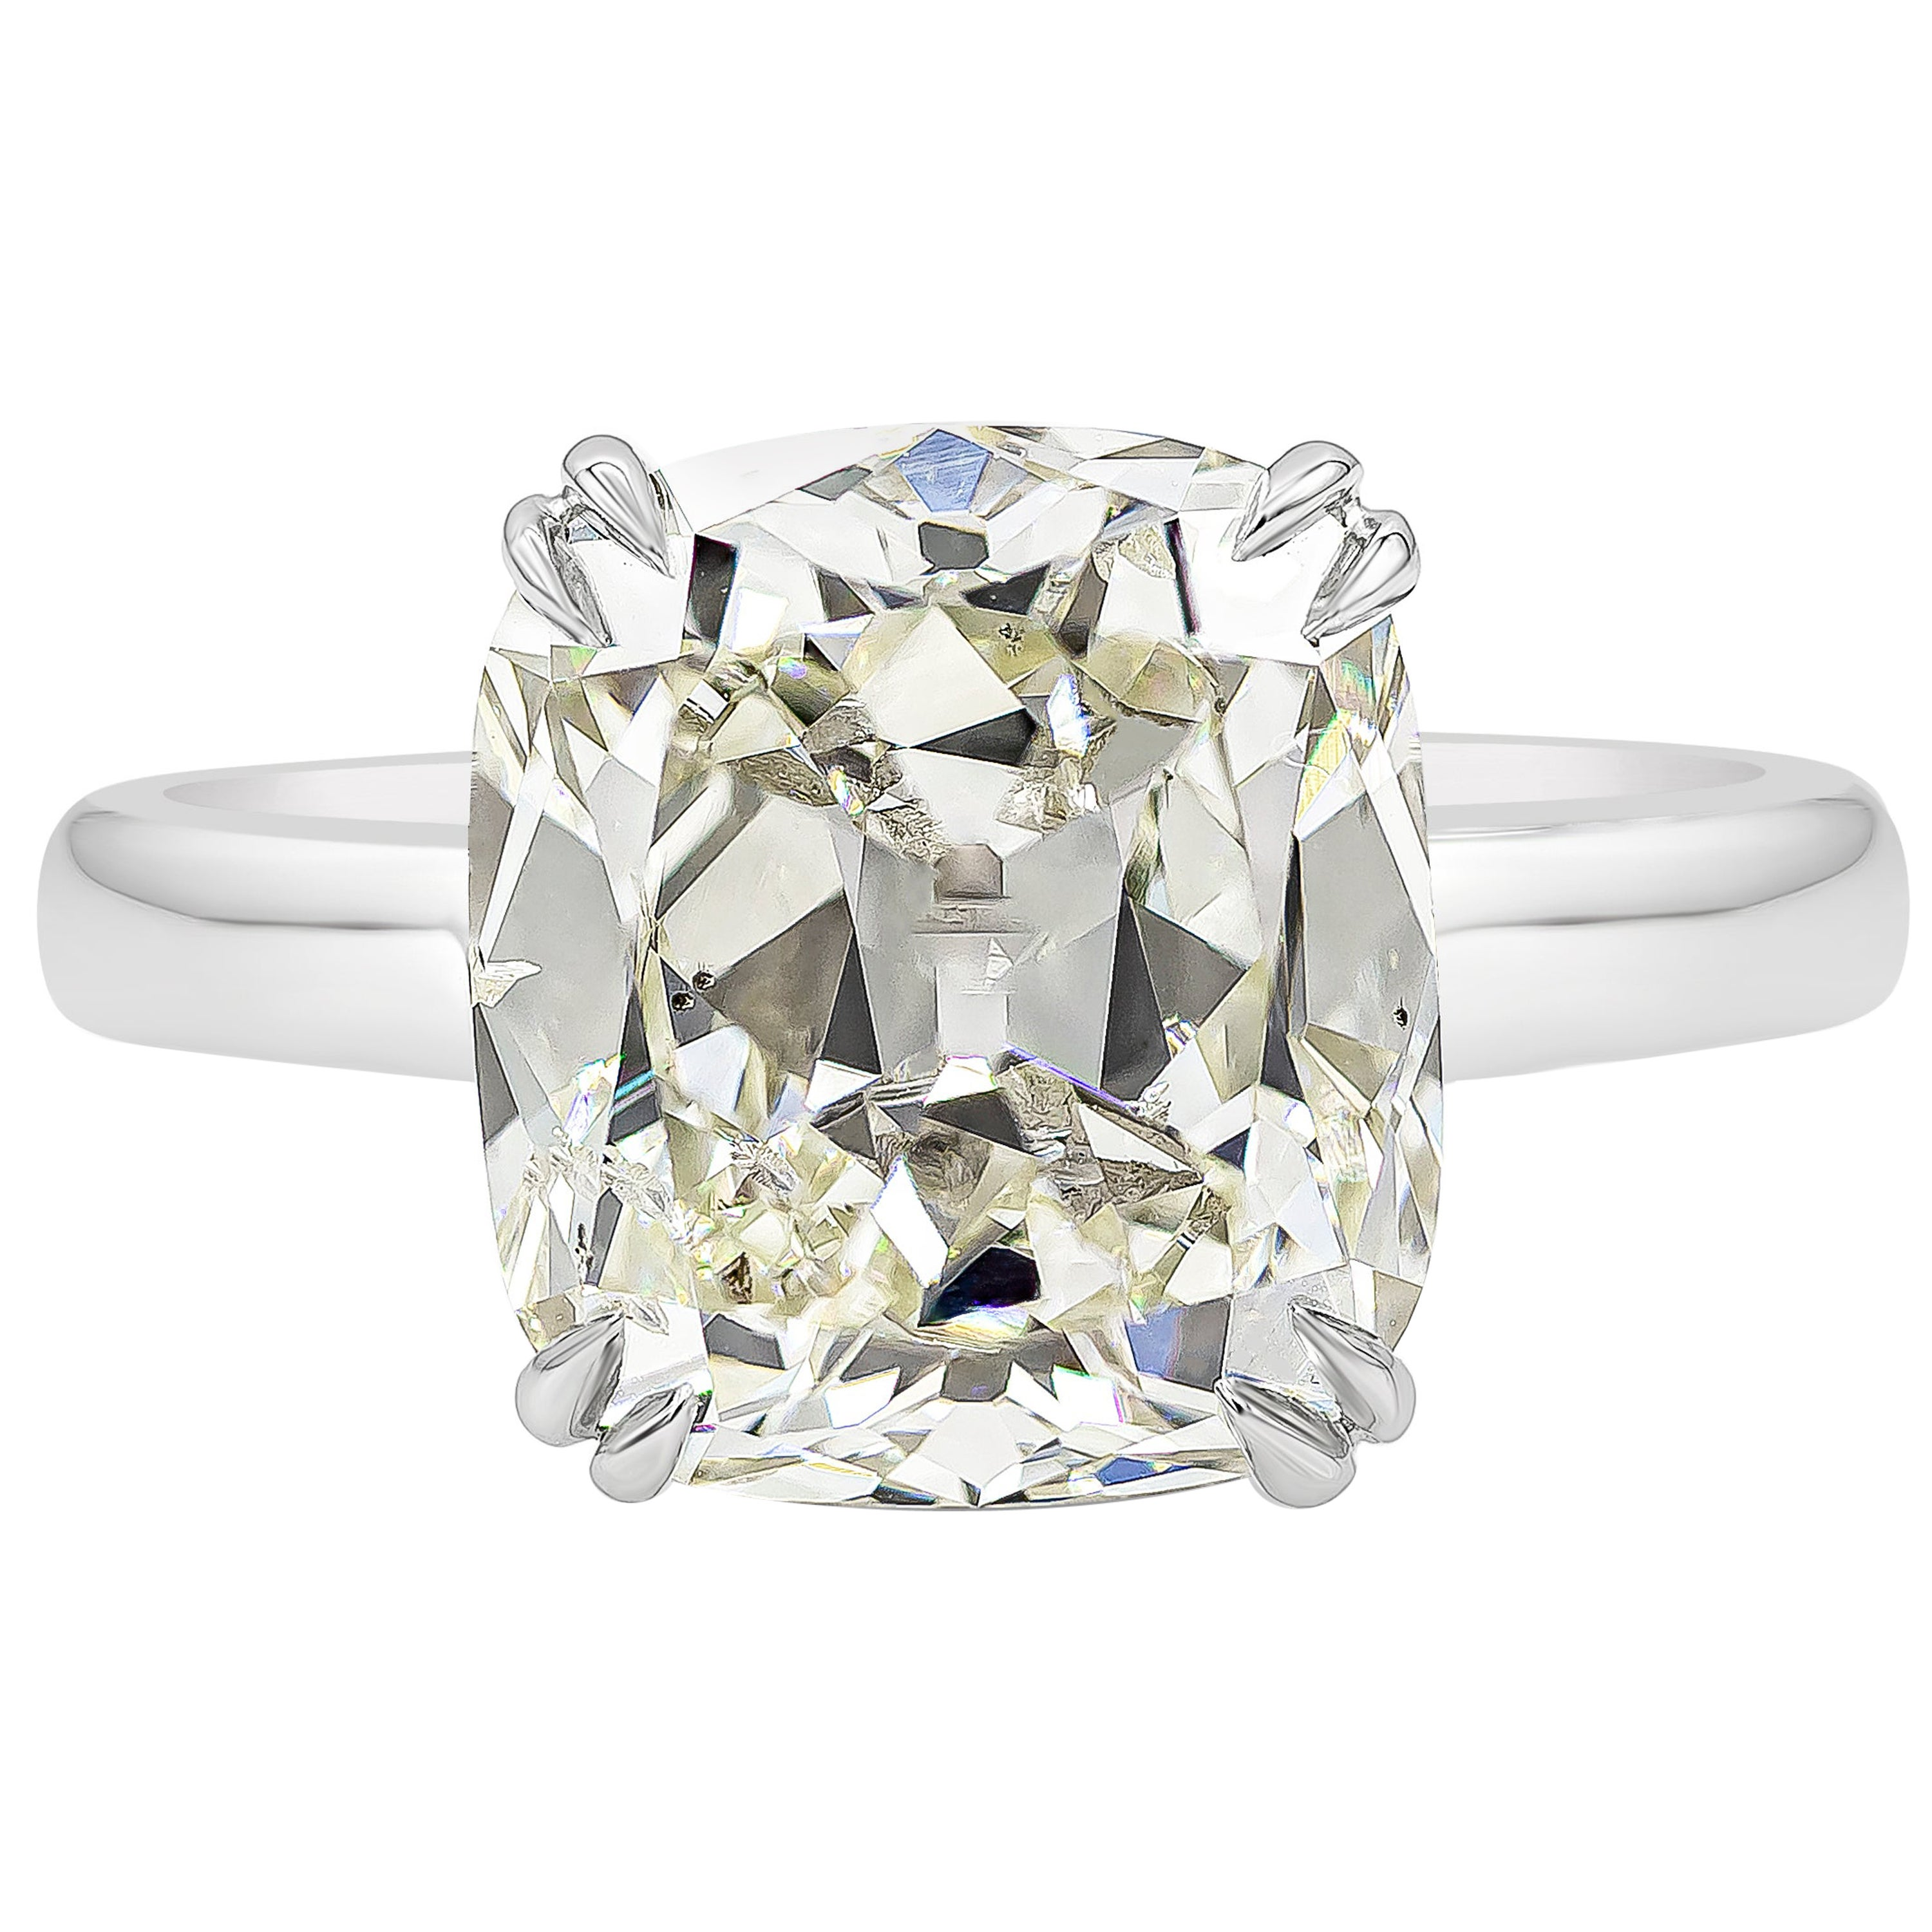 GIA Certified 5.53 Carat Cushion Brilliant Diamond Solitaire Engagement Ring